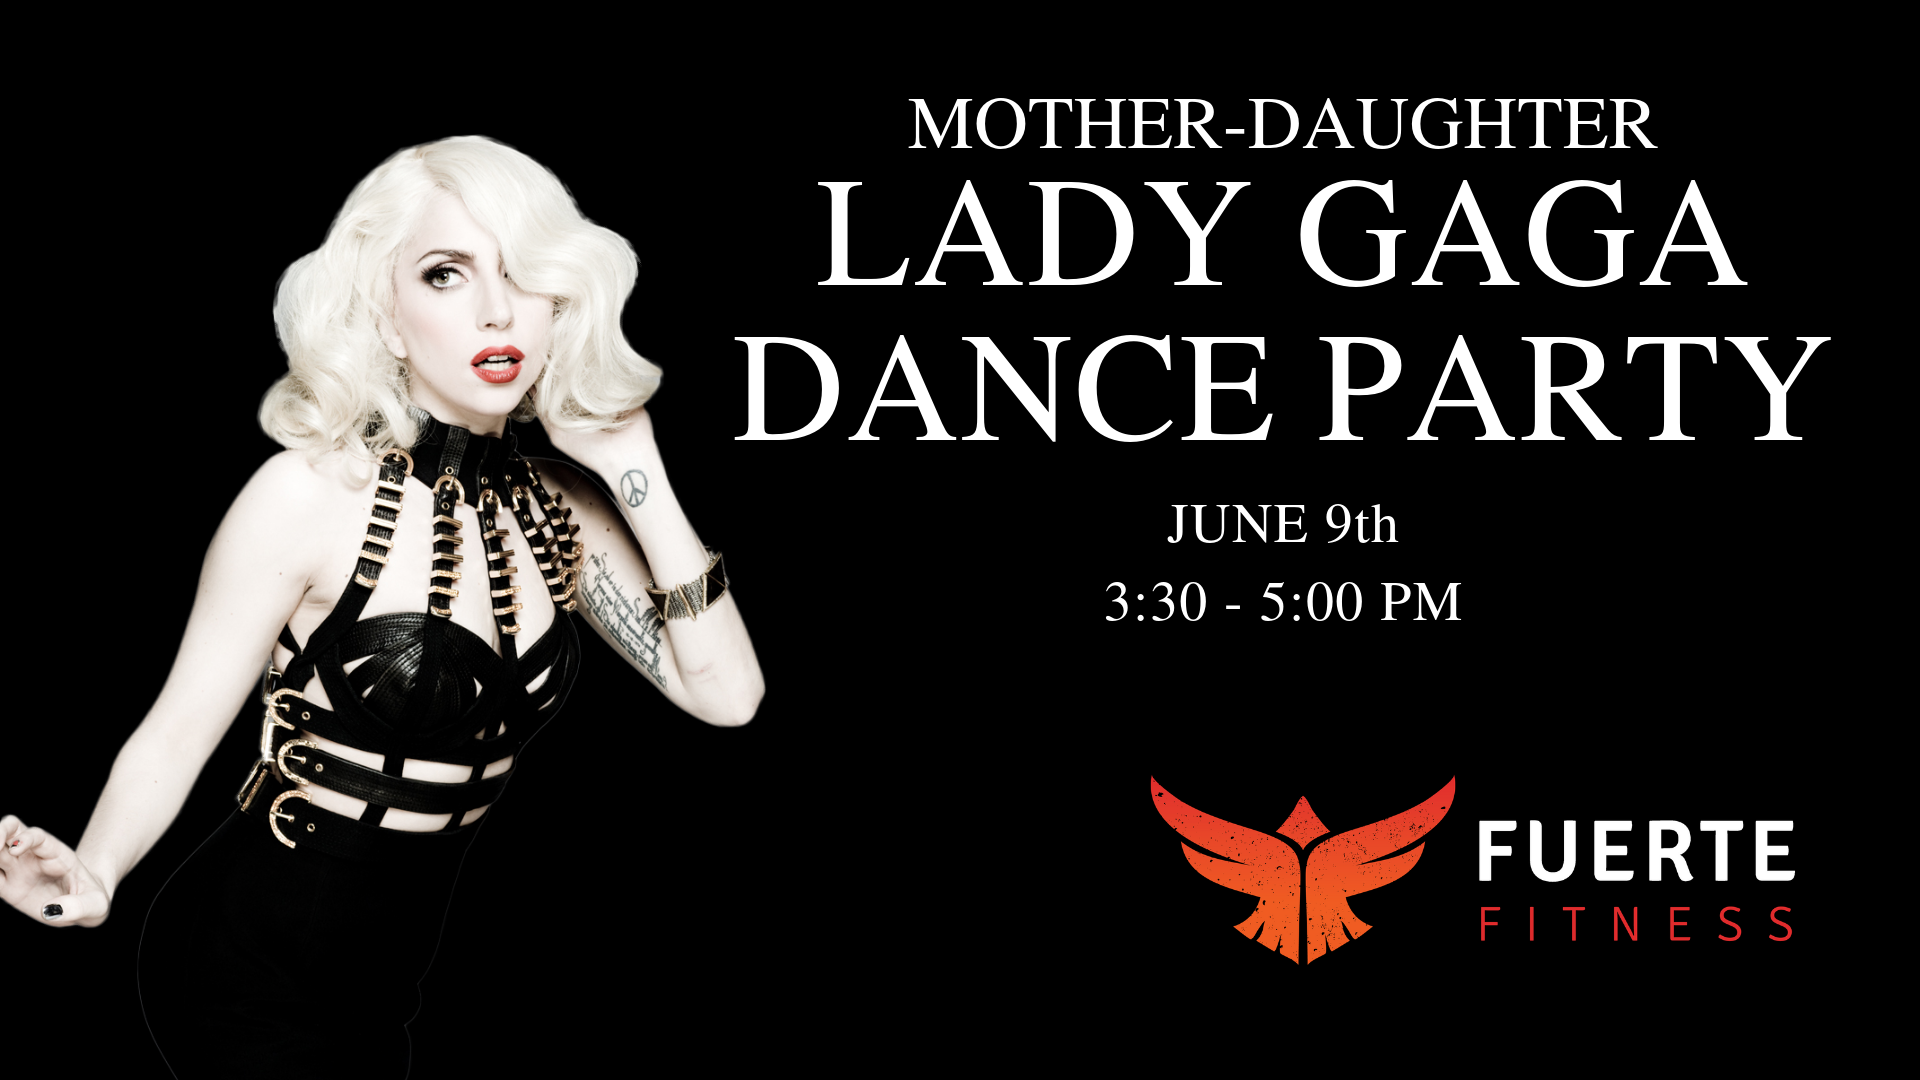 Mother-Daughter Dance - Lady Gaga (Facebook Event).png